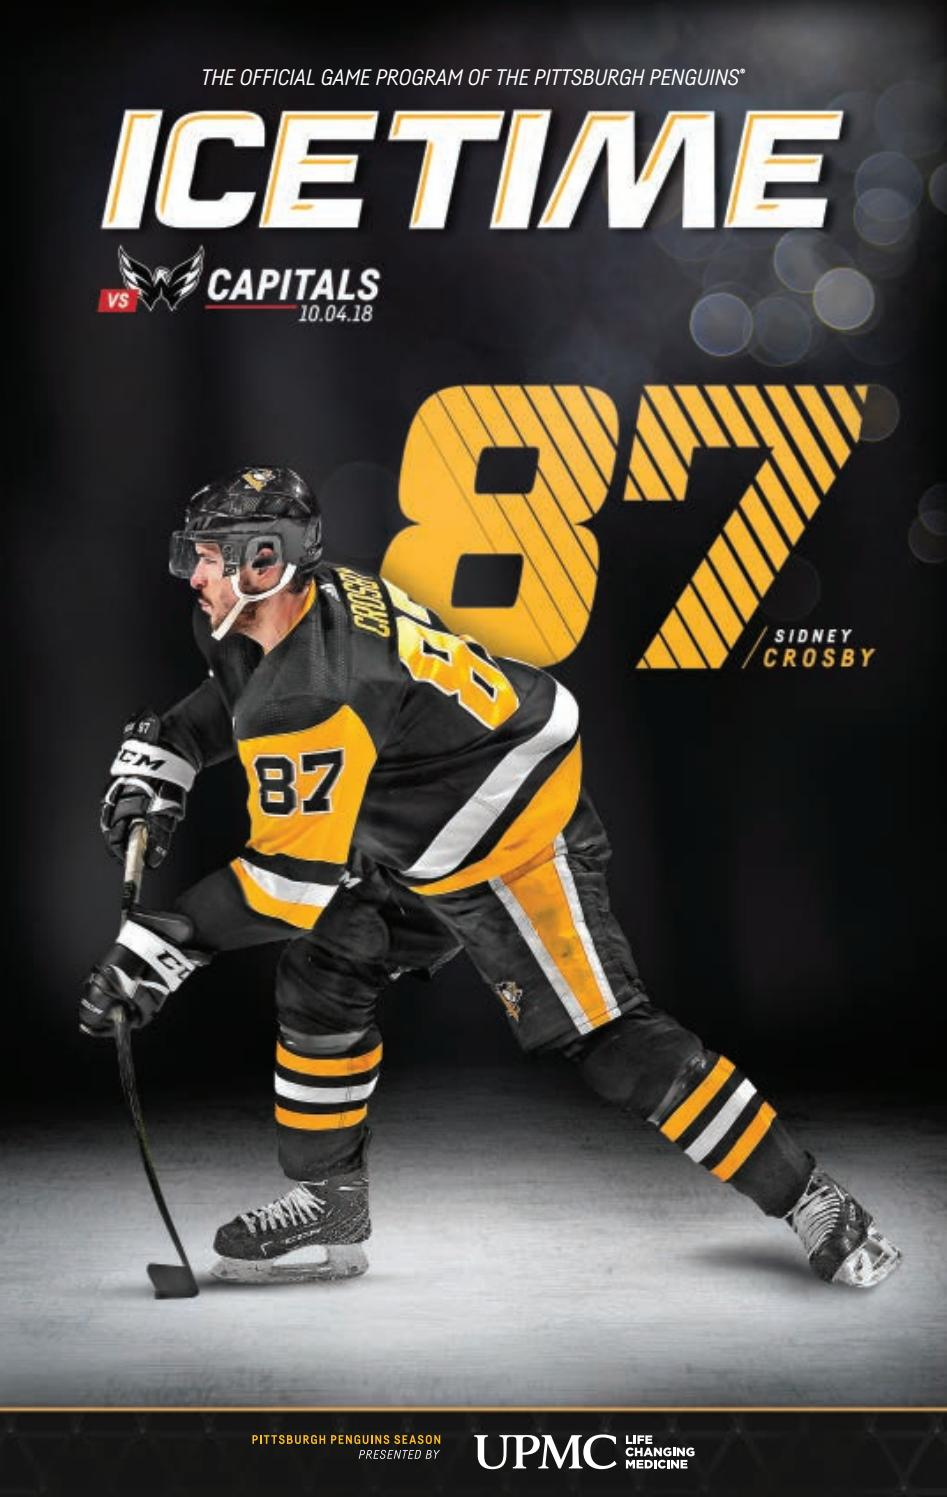 Icetime Game 1 Vs Washington Capitals 10 04 18 By Pittsburgh Penguins Issuu